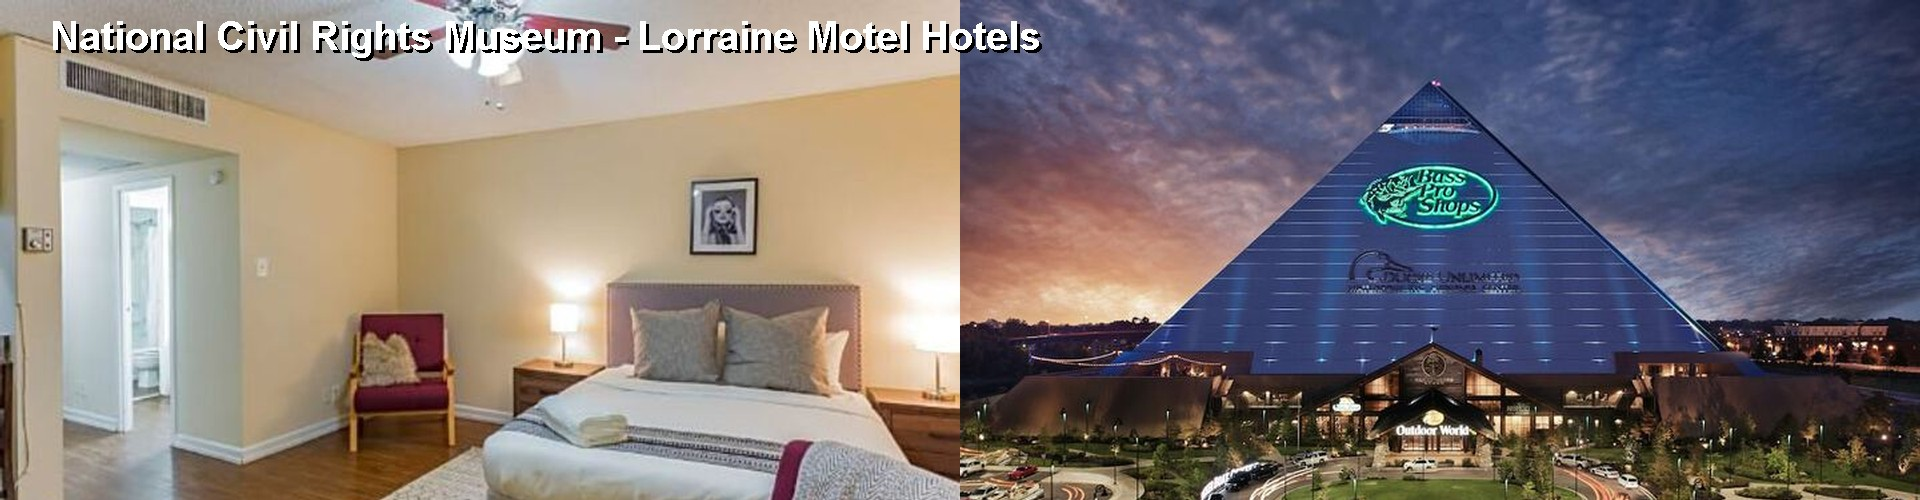 5 Best Hotels near National Civil Rights Museum - Lorraine Motel